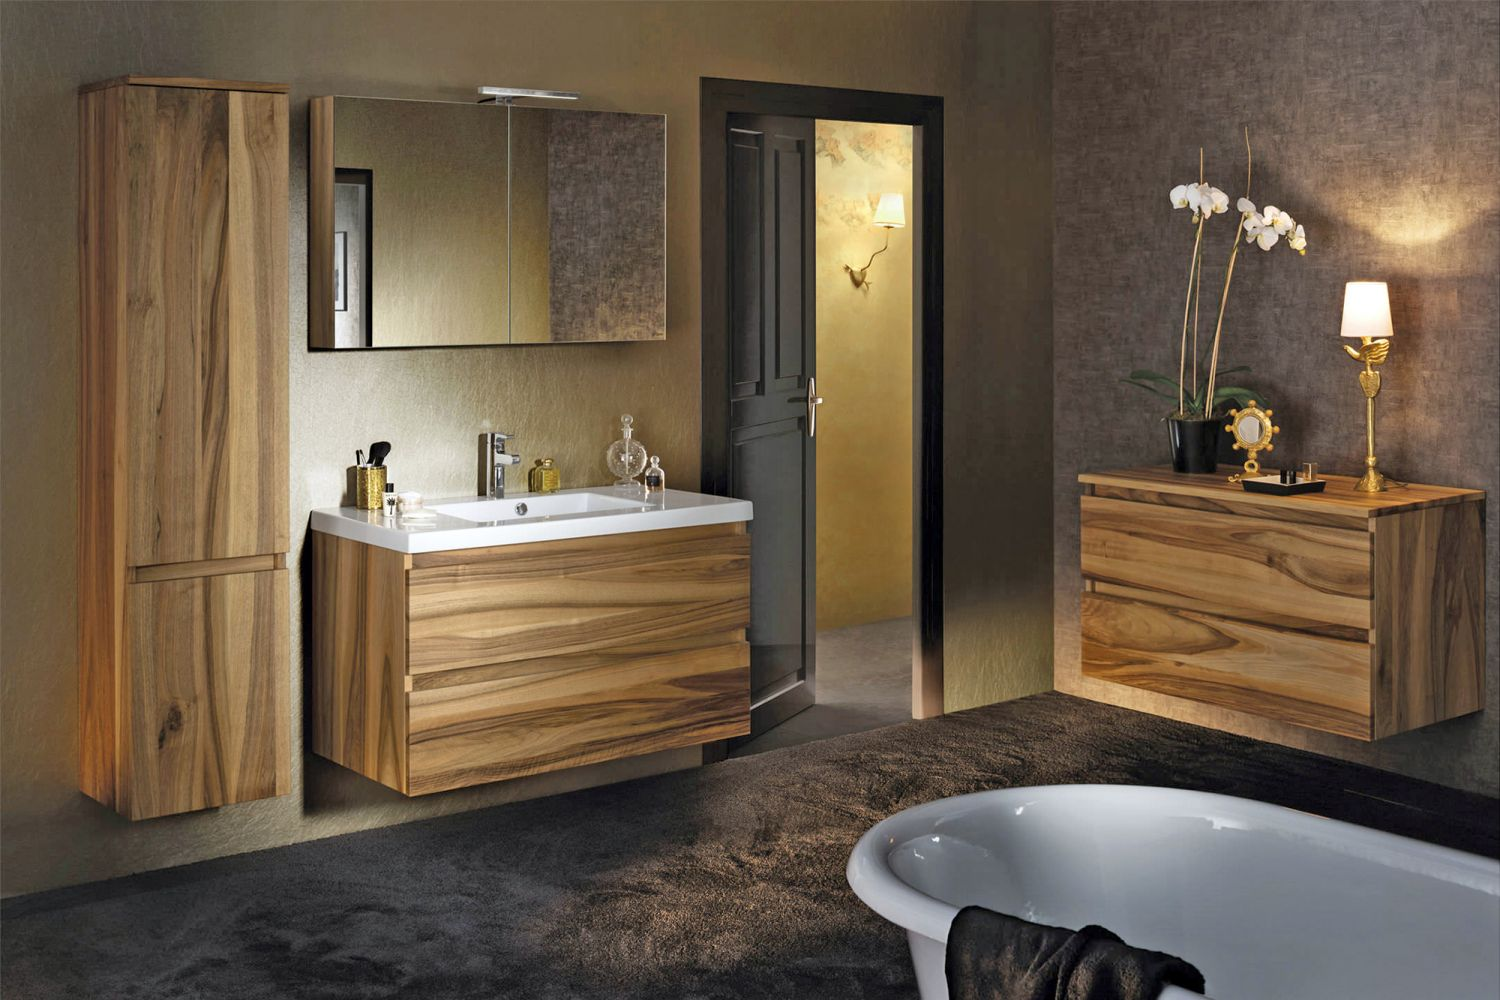 salle de bain moderne en bois tr s nature meuble et d coration marseille mobilier design. Black Bedroom Furniture Sets. Home Design Ideas